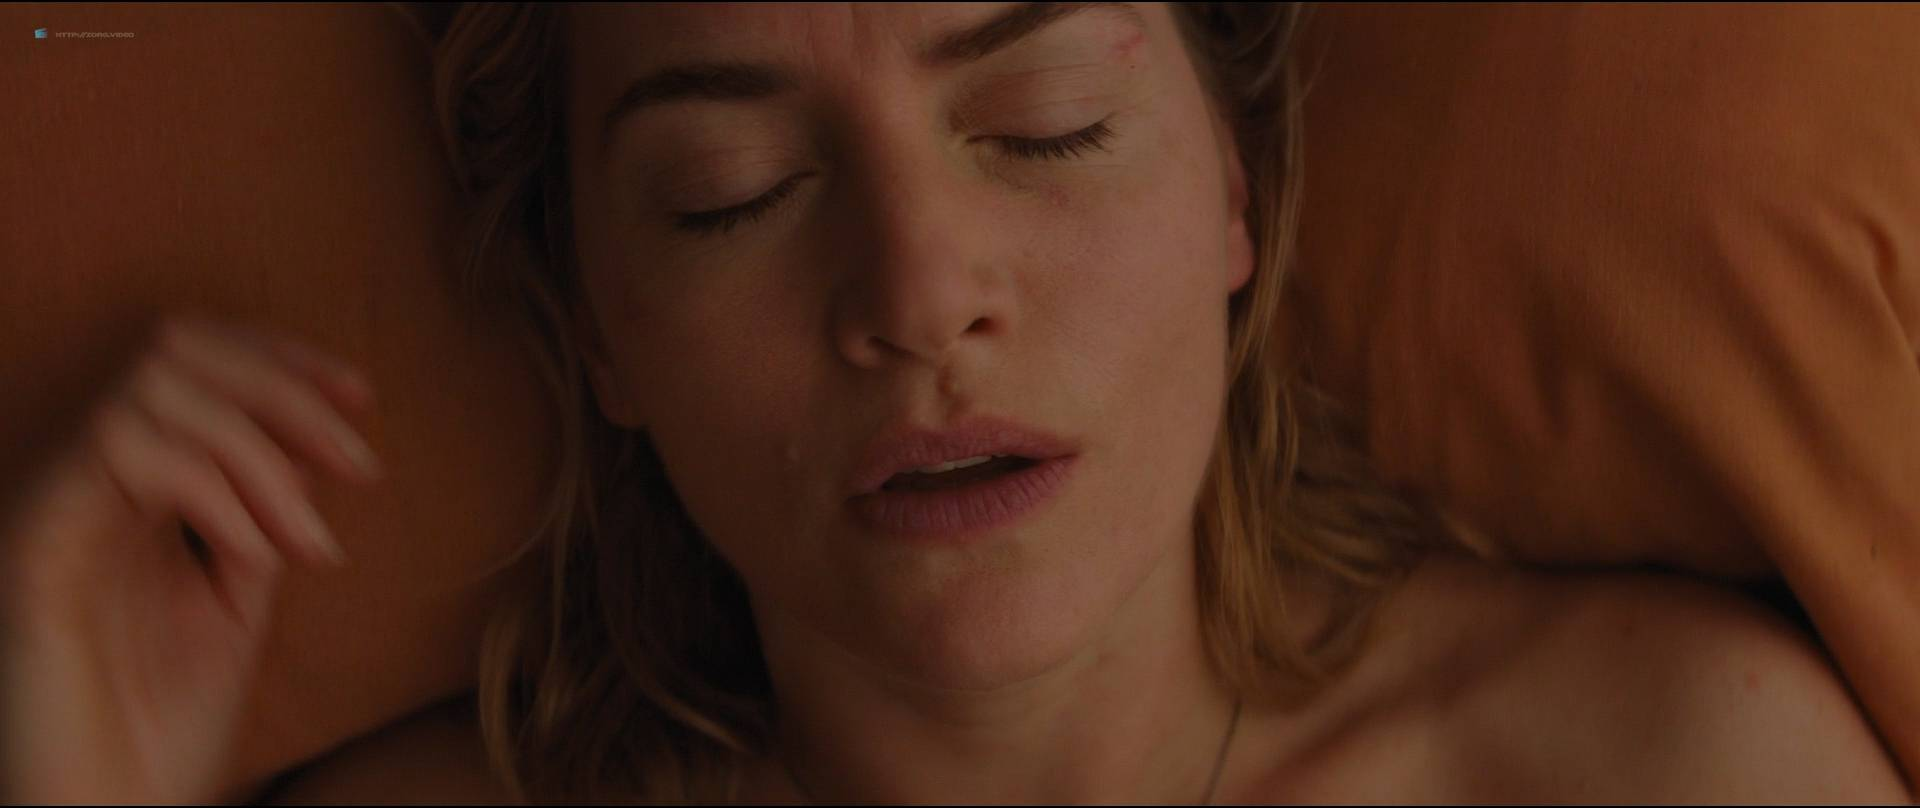 Kate-Winslet-hot-and-some-sex-The-Mountain-Between-Us-2017-HD-1080p-BluRay-07.jpg